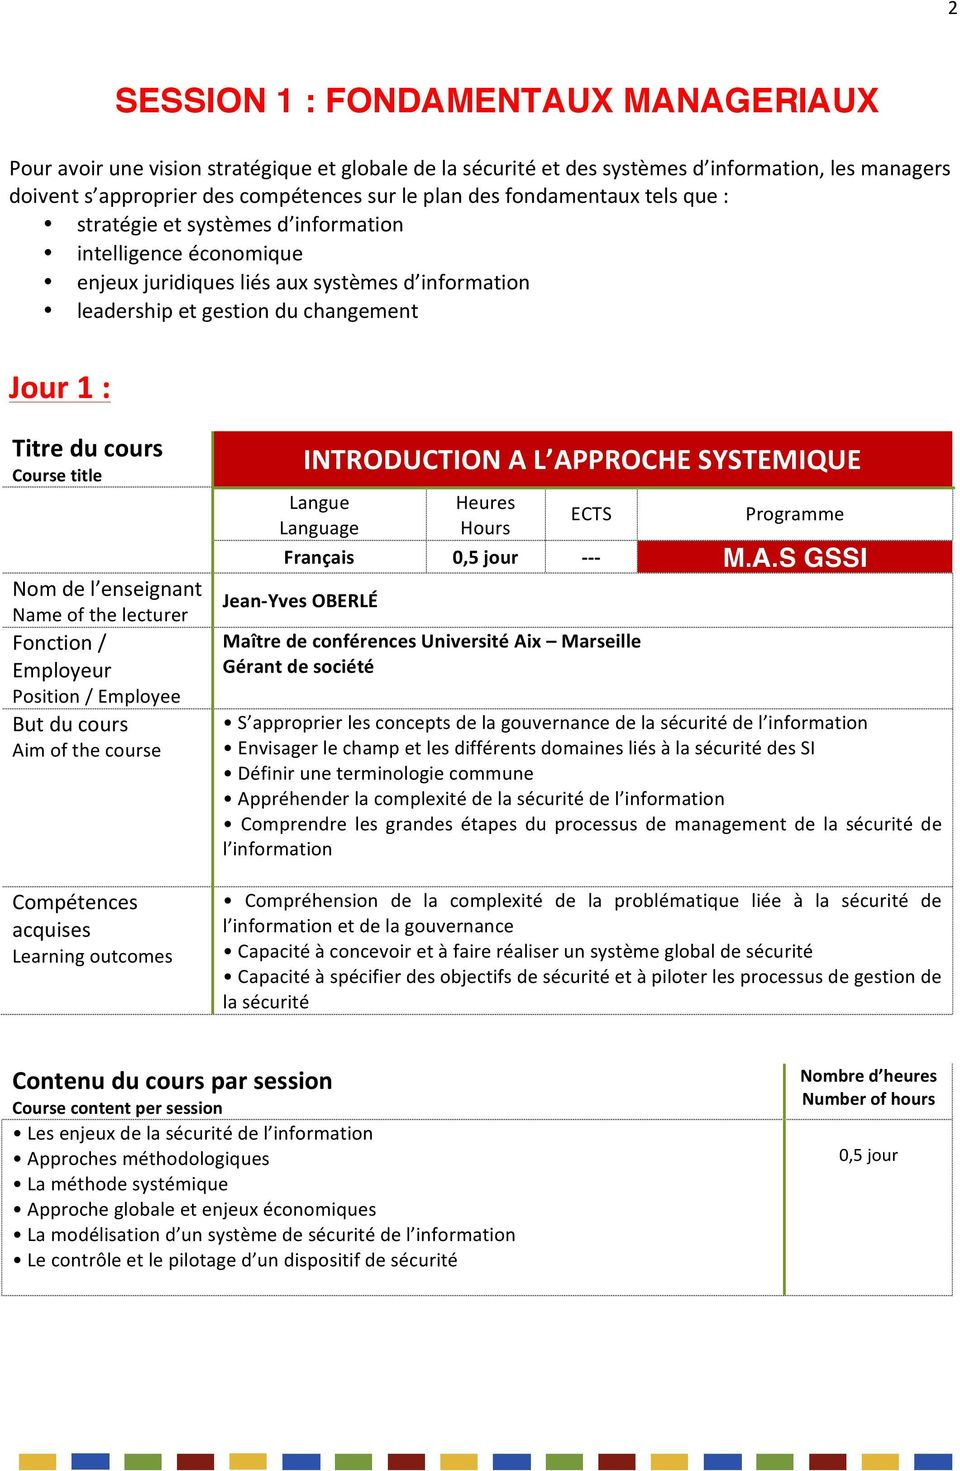 Nameofthelecturer Fonction/ Employeur Position/Employee Butducours Aimofthecourse Compétences acquises Learningoutcomes INTRODUCTIONAL APPROCHESYSTEMIQUE Langue Language Heures Hours ECTS Programme